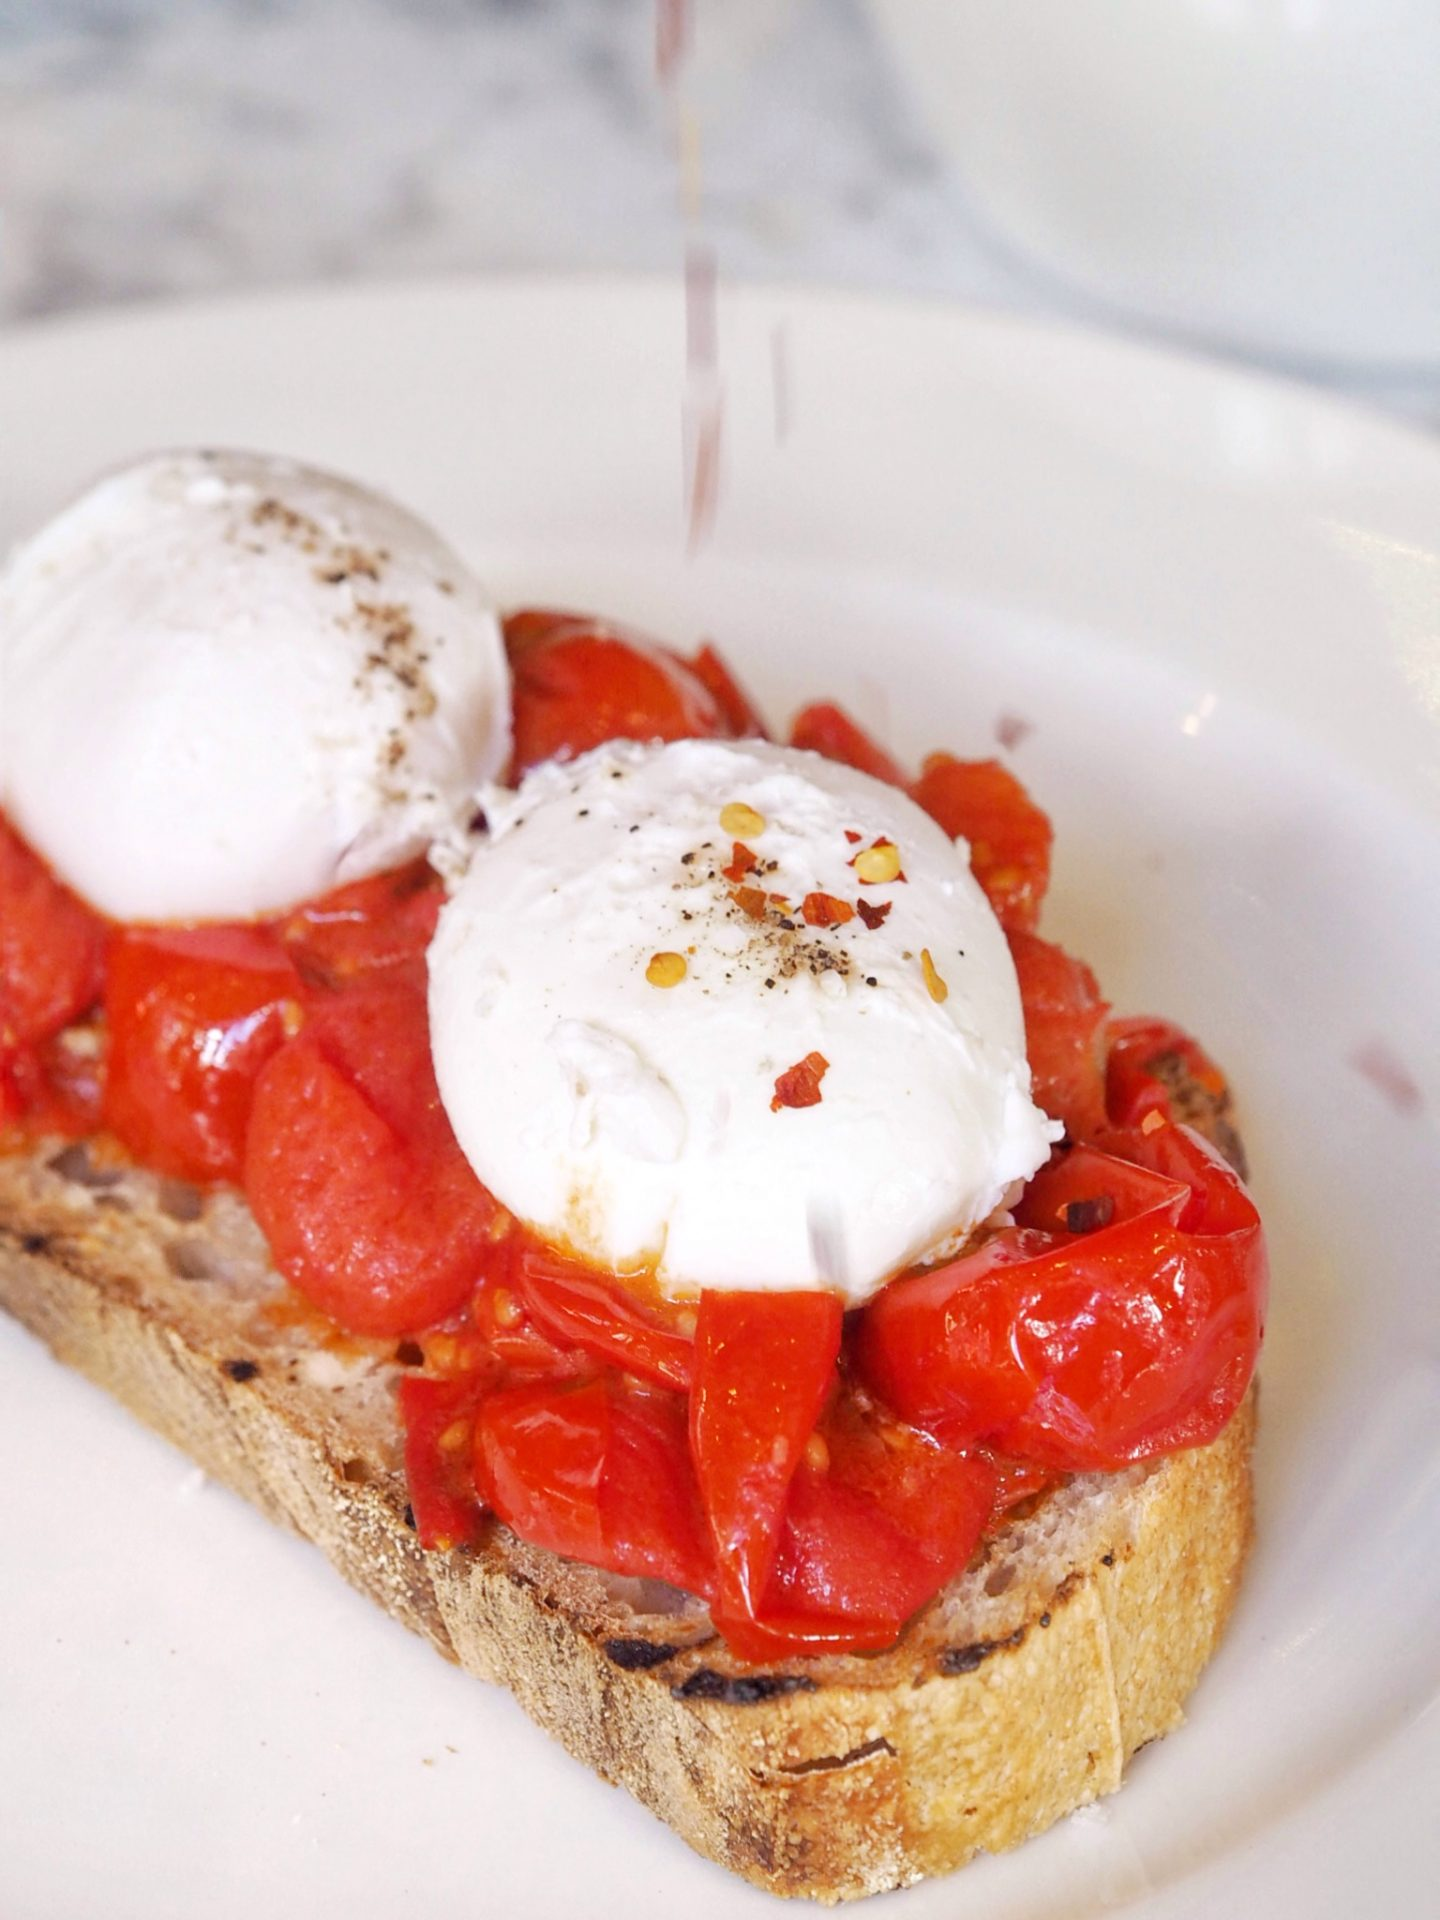 Sourdough bread, grilled tomatoes and poached eggs